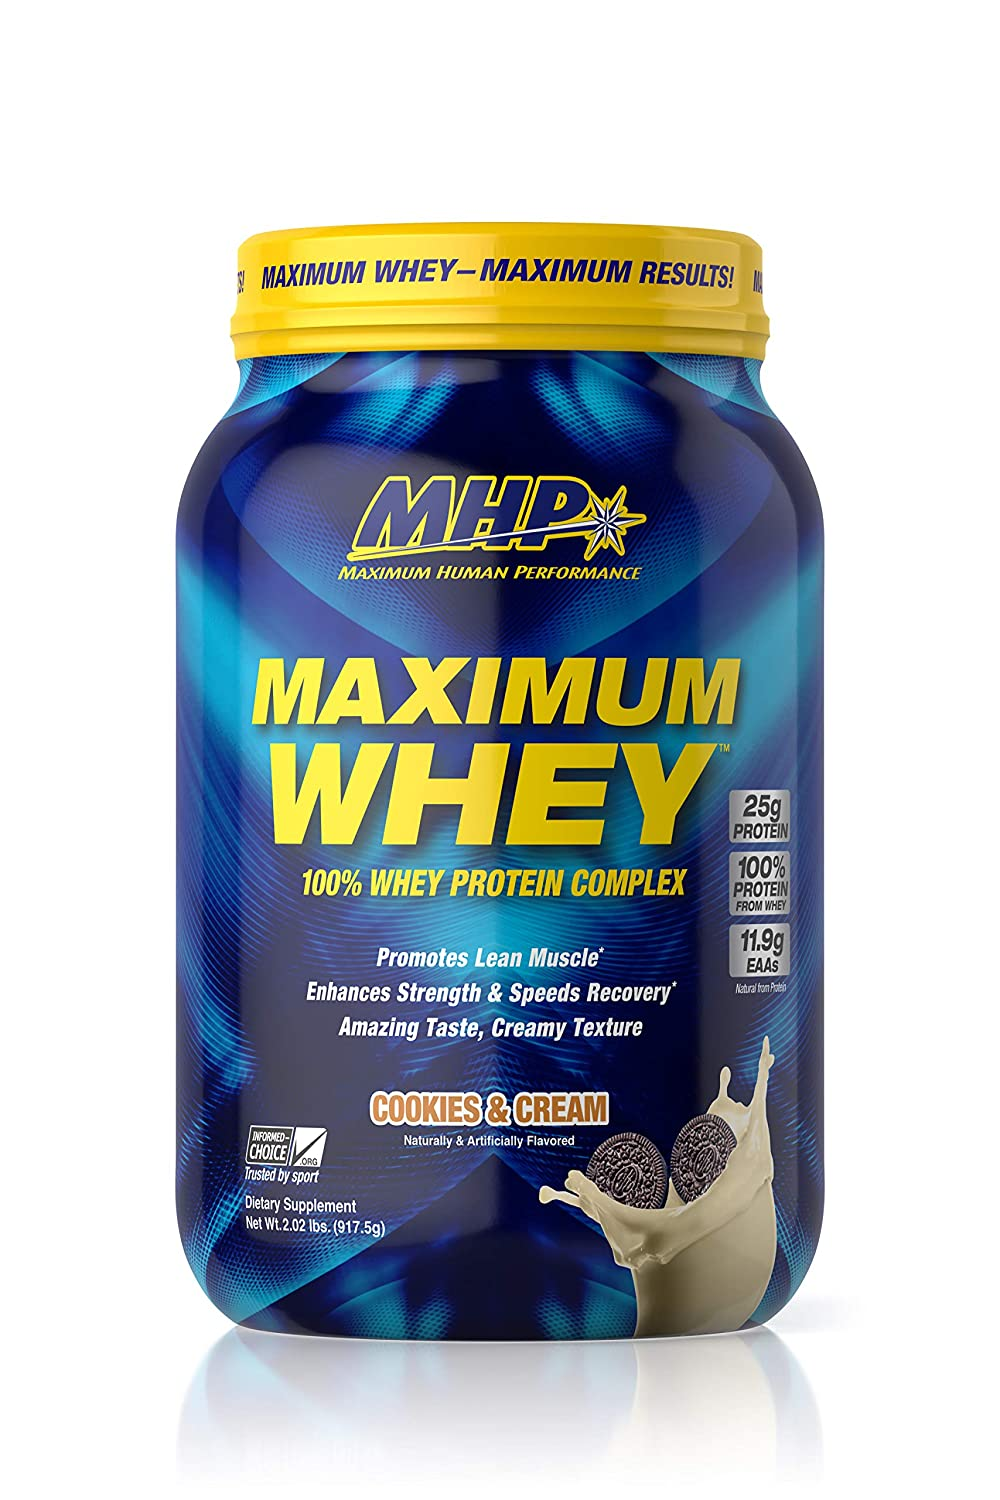 MHP Maximum Whey Protein, 25g Fast Acting Delicious Tasting Protein, Enhaces Strength Speeds Recovery, Cookies Cream, 25 Servings